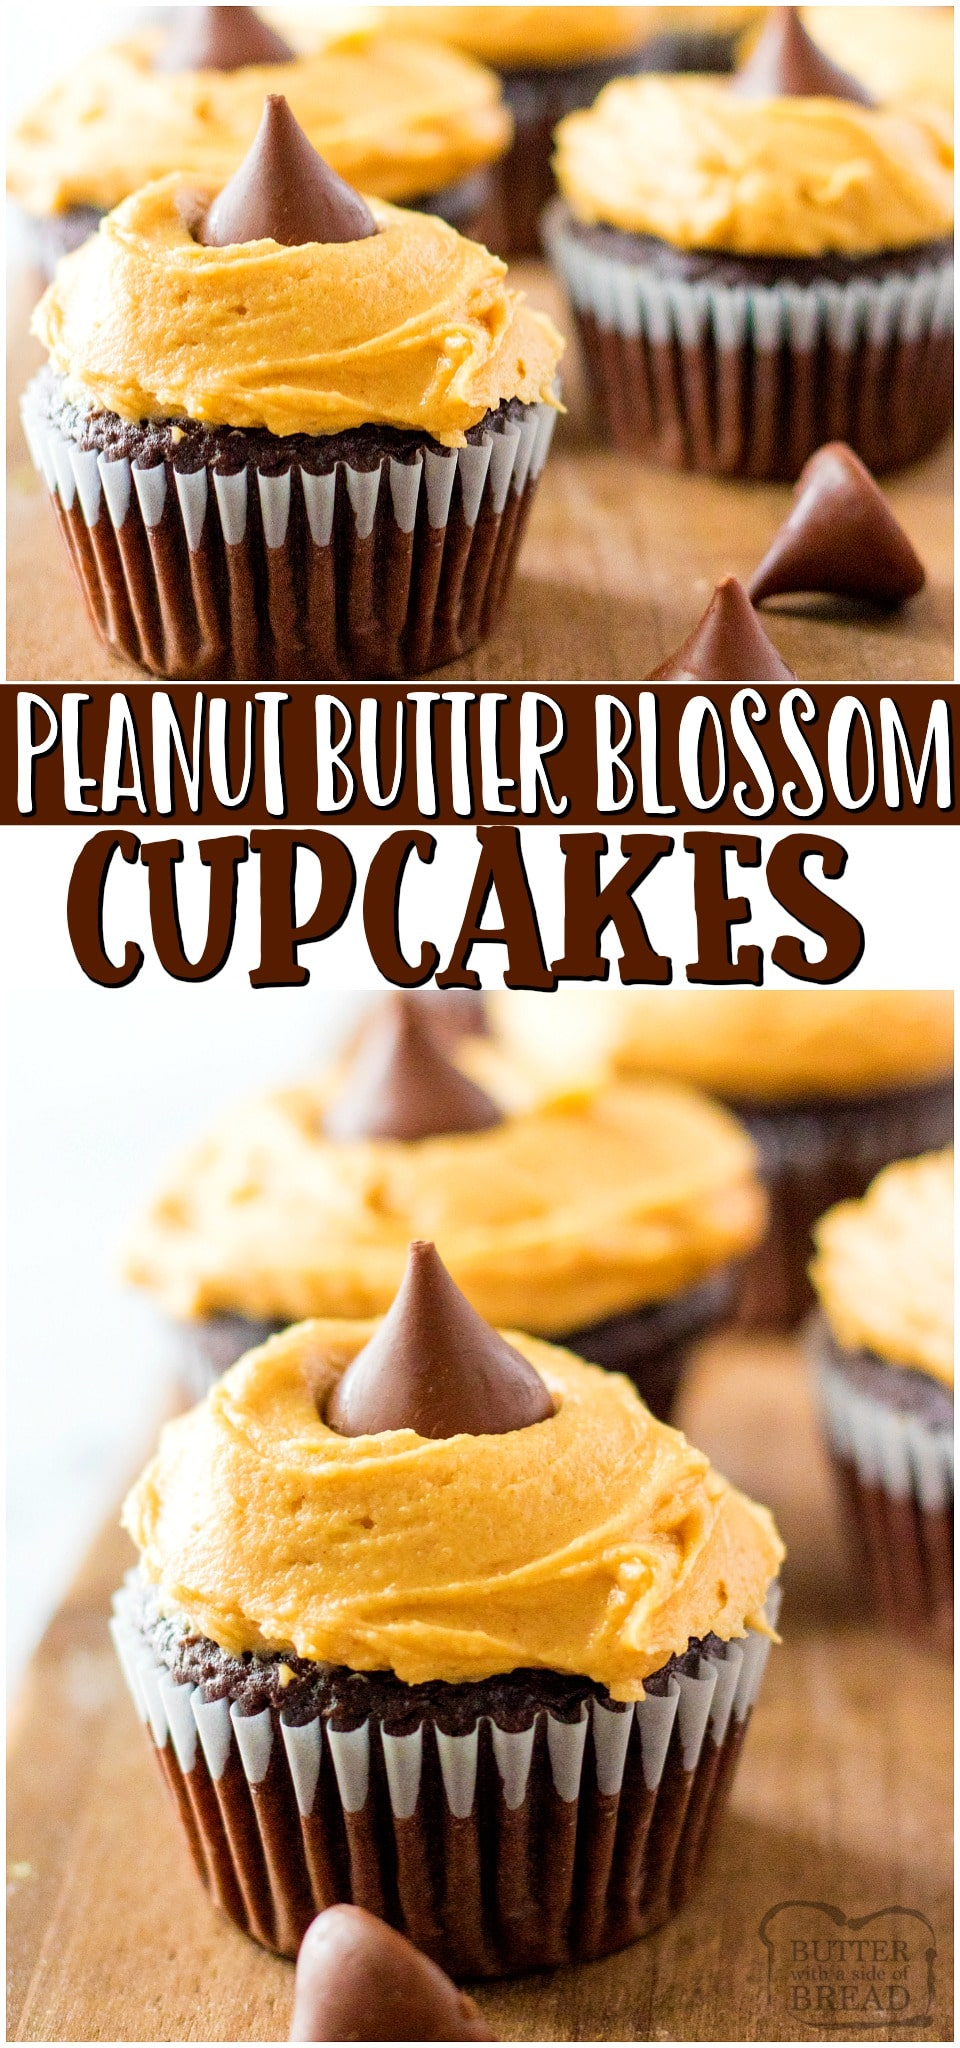 Peanut butter blossom cupcakes~ a fun twist on traditional peanut butter blossom cookies! Chocolate cupcakes topped with Peanut butter cream cheese frosting & a chocolate kiss are a delicious treat! #cupcakes #peanutbutter #dessert #frosting #chocolate #easyrecipe from BUTTER WITH A SIDE OF BREAD